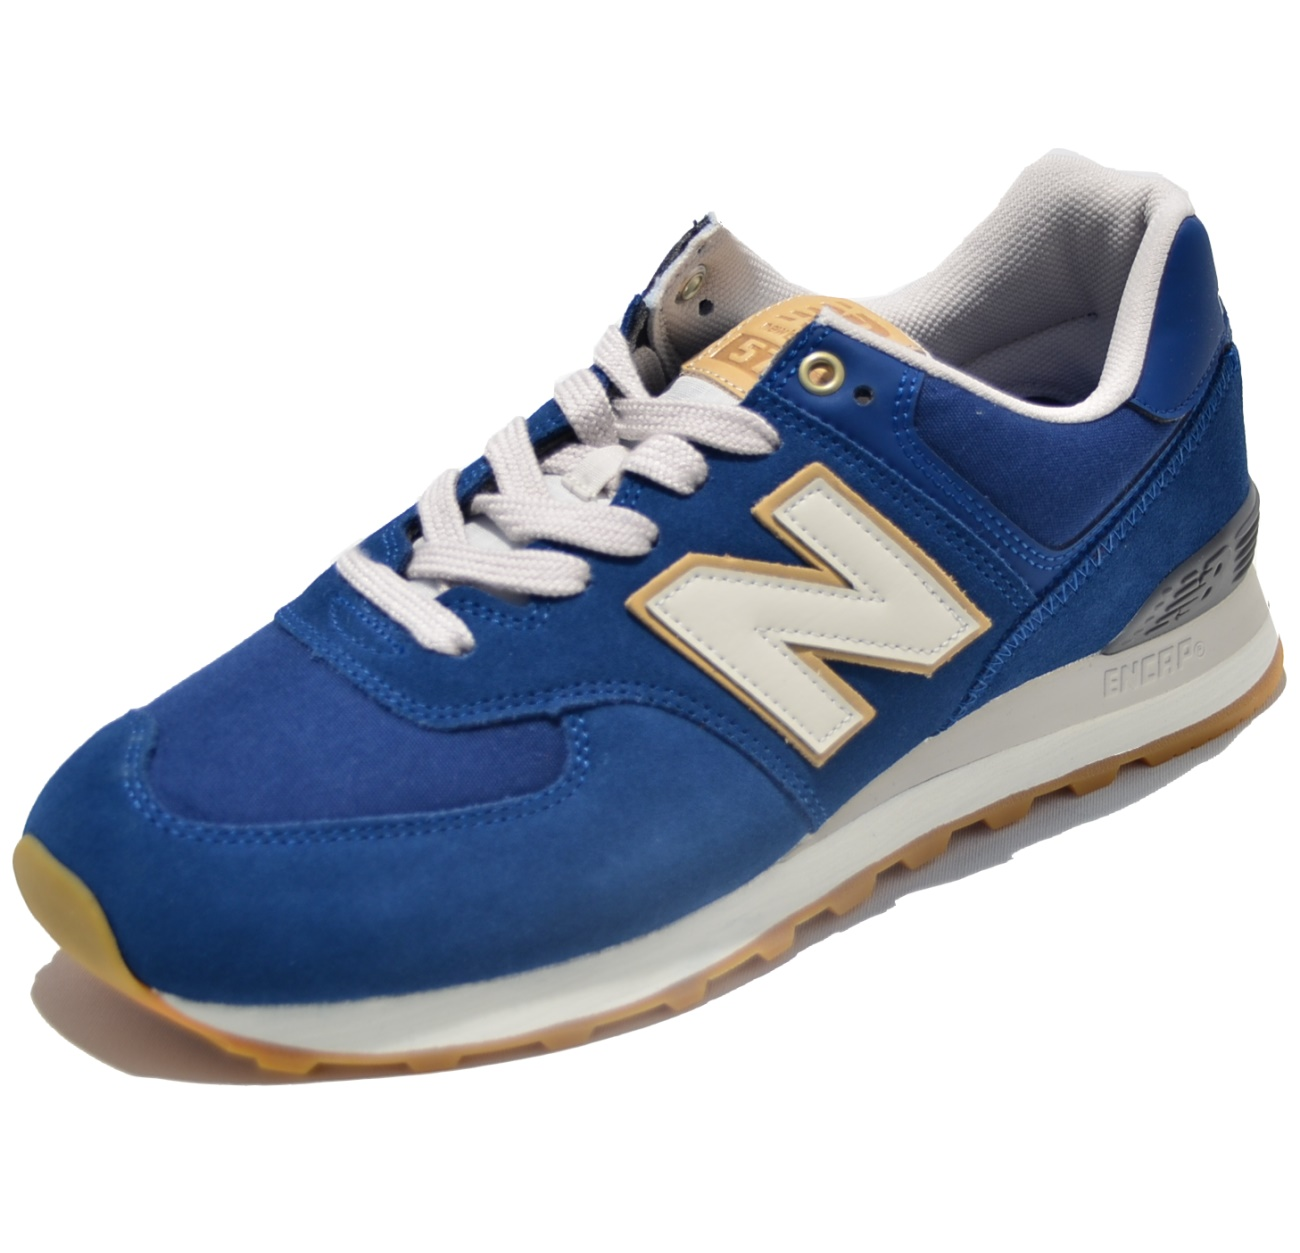 finest selection 8bb0a dc0ee New Balance Classic Laufschuhe ML574OUB in Farbe blau - New Balance bei  Army Shop - www.armydepot-chemnitz.de